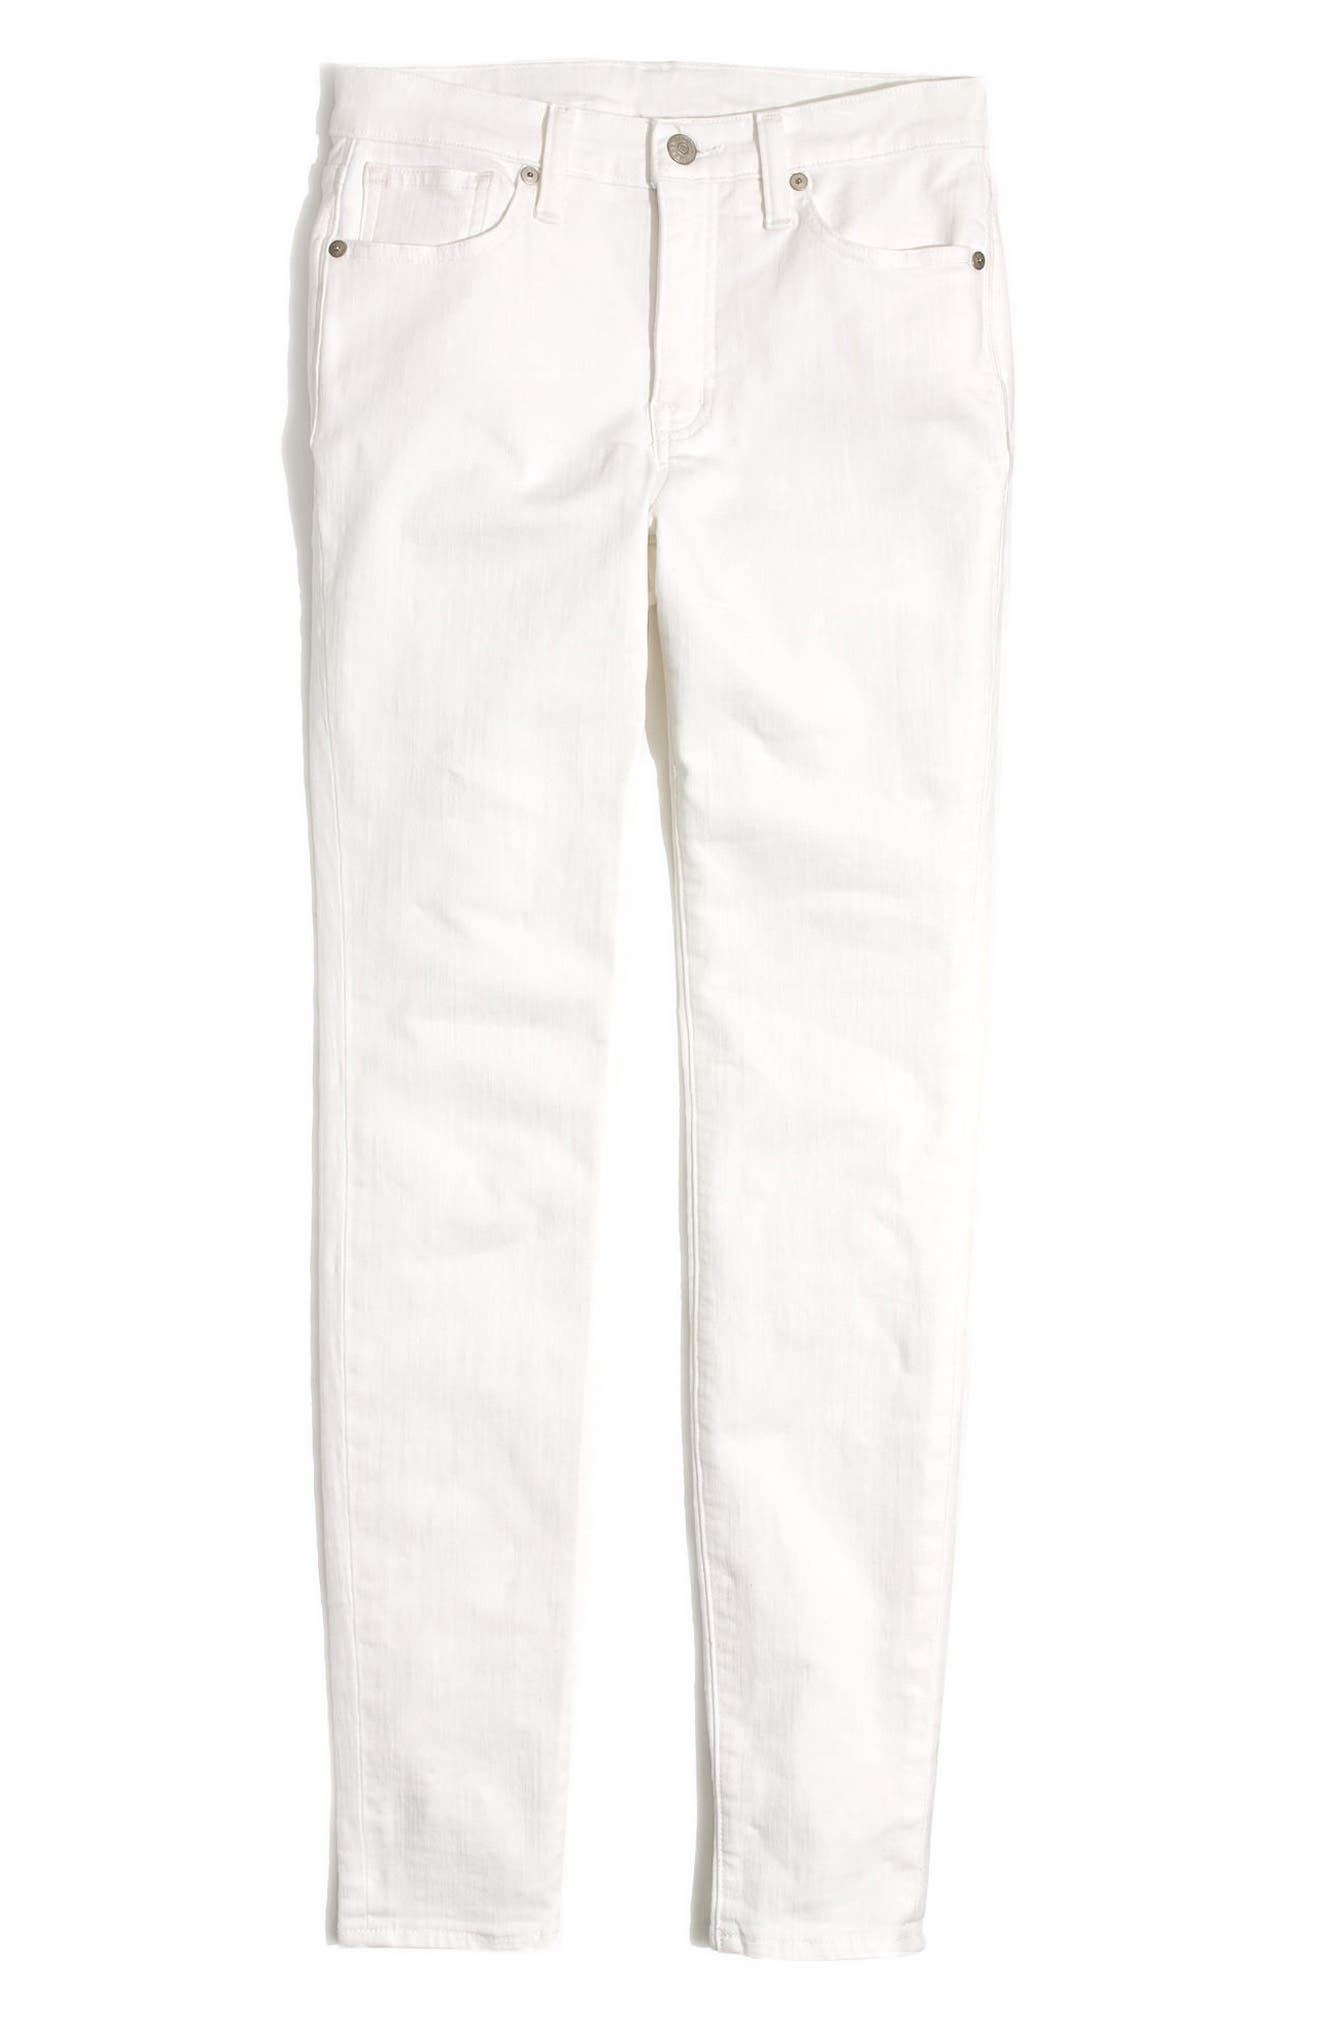 MADEWELL, 9-Inch High Waist Skinny Jeans, Alternate thumbnail 6, color, PURE WHITE